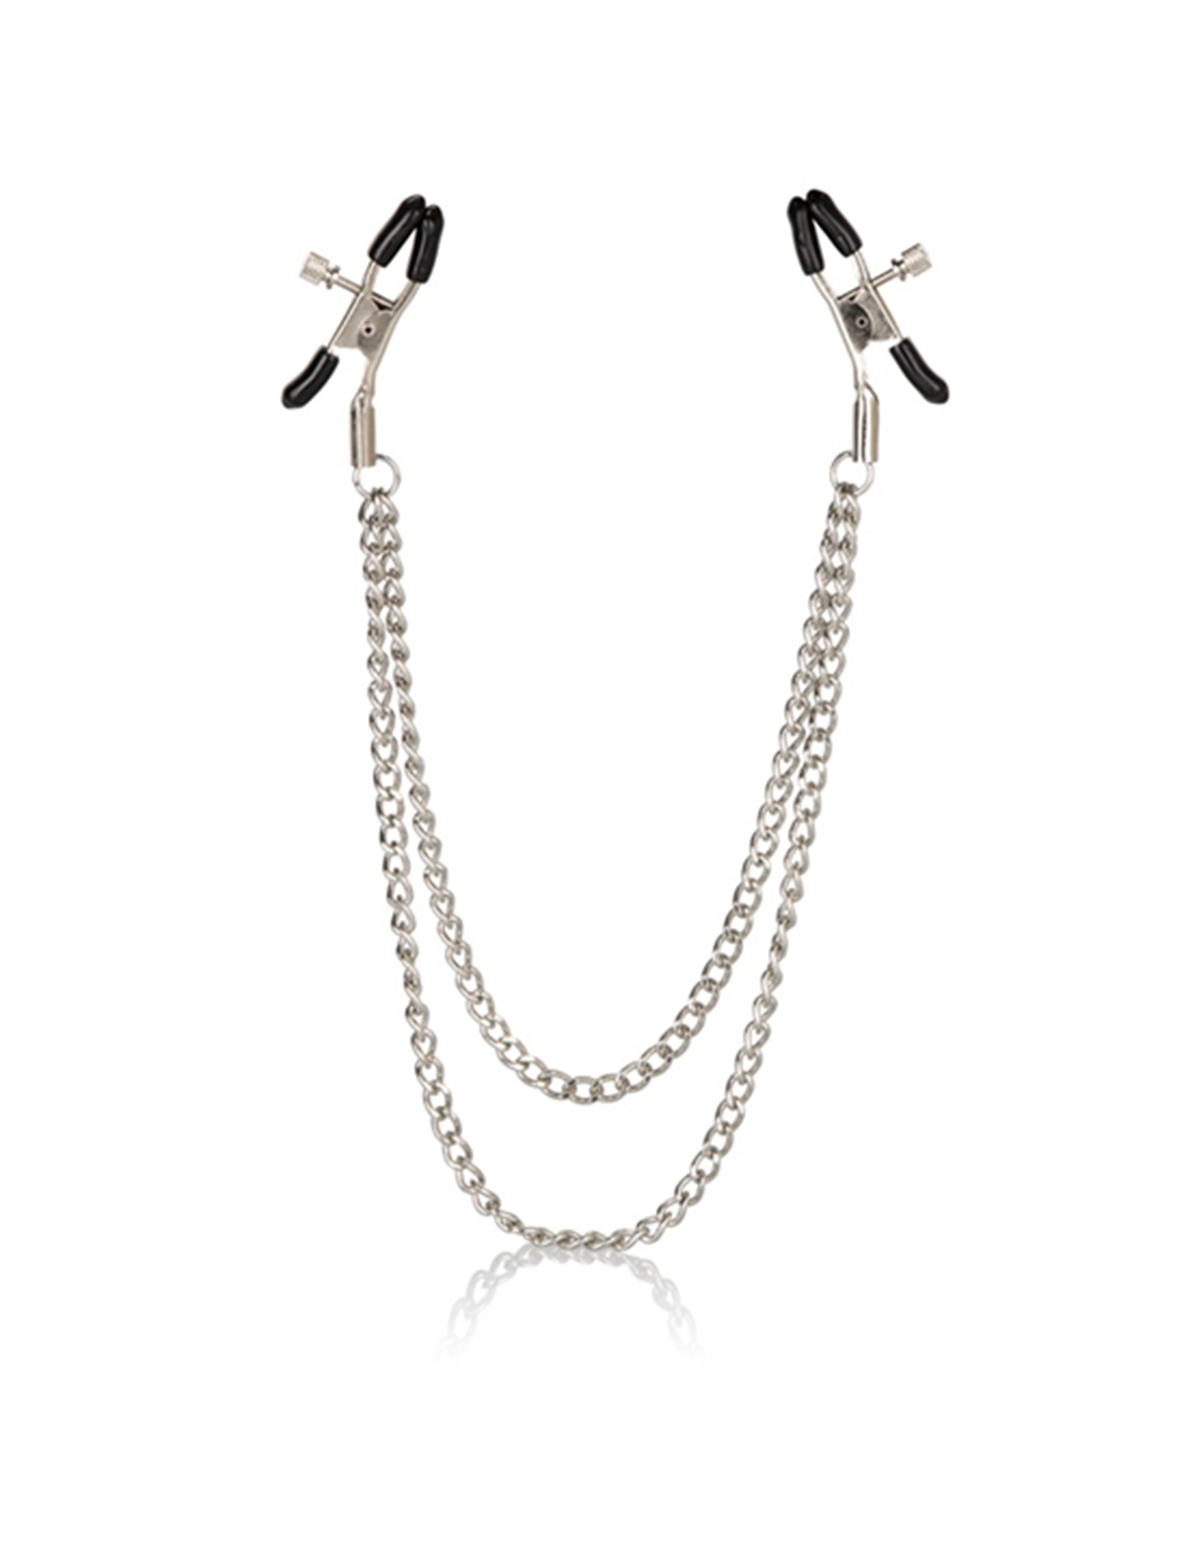 Tiered Chain Nipple Clamps